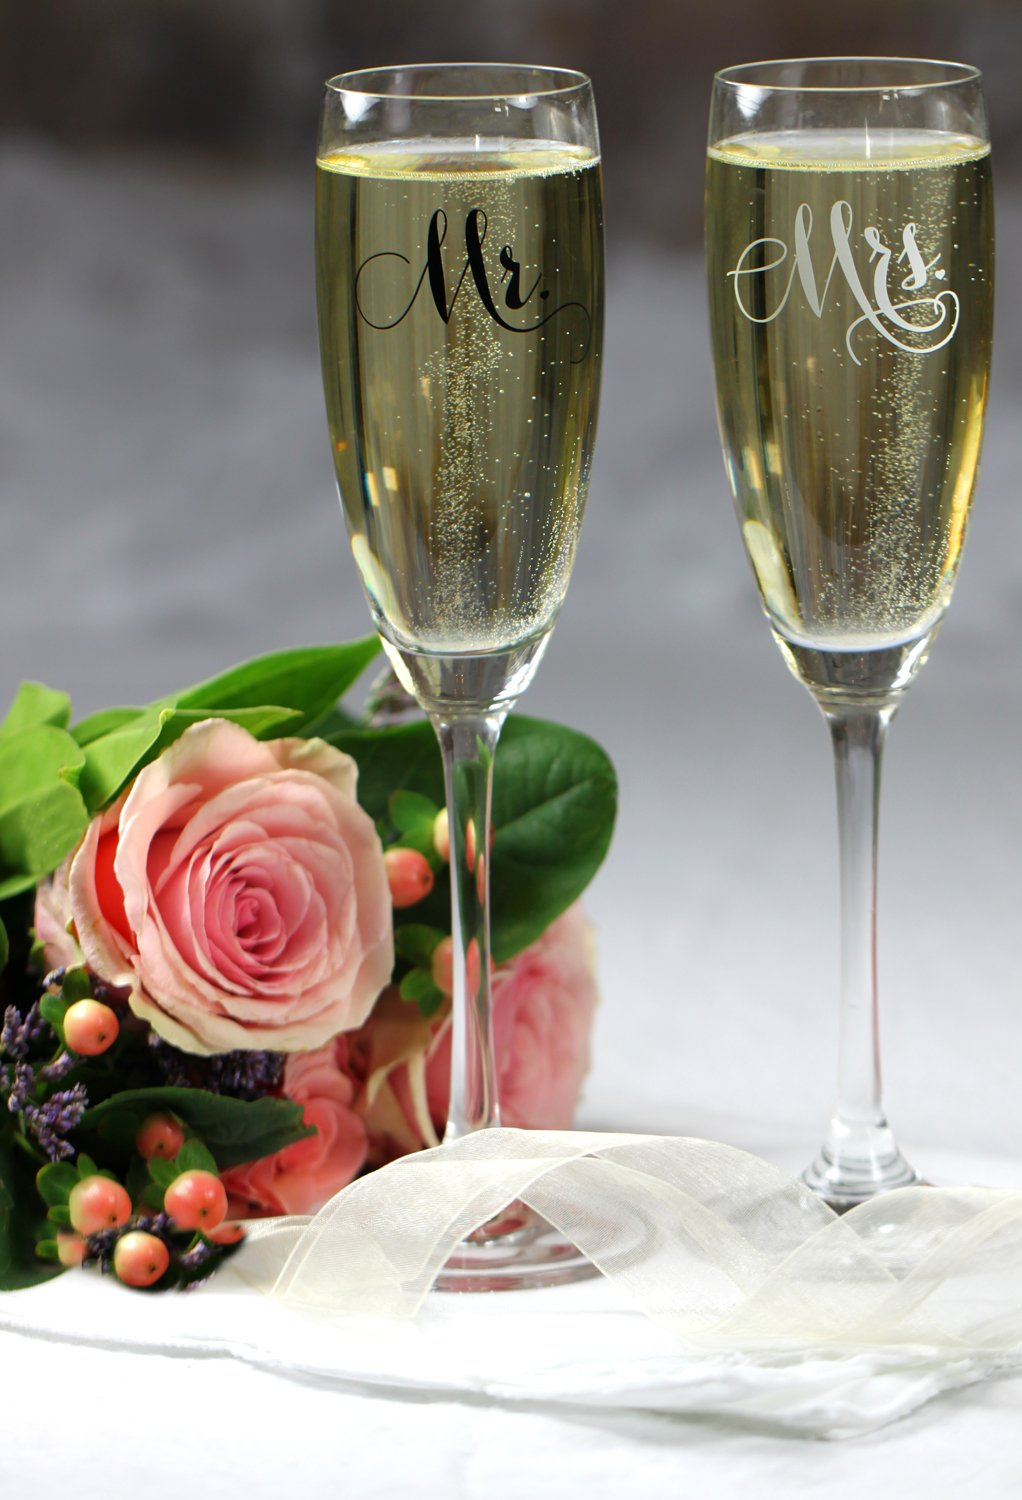 All Things Weddings, Mr. and Mrs. Wedding Glass Champagne Toasting Flutes, Reception or Engagement Bride and Groom Glasses, Set of 2 by All Things Weddings (Image #5)